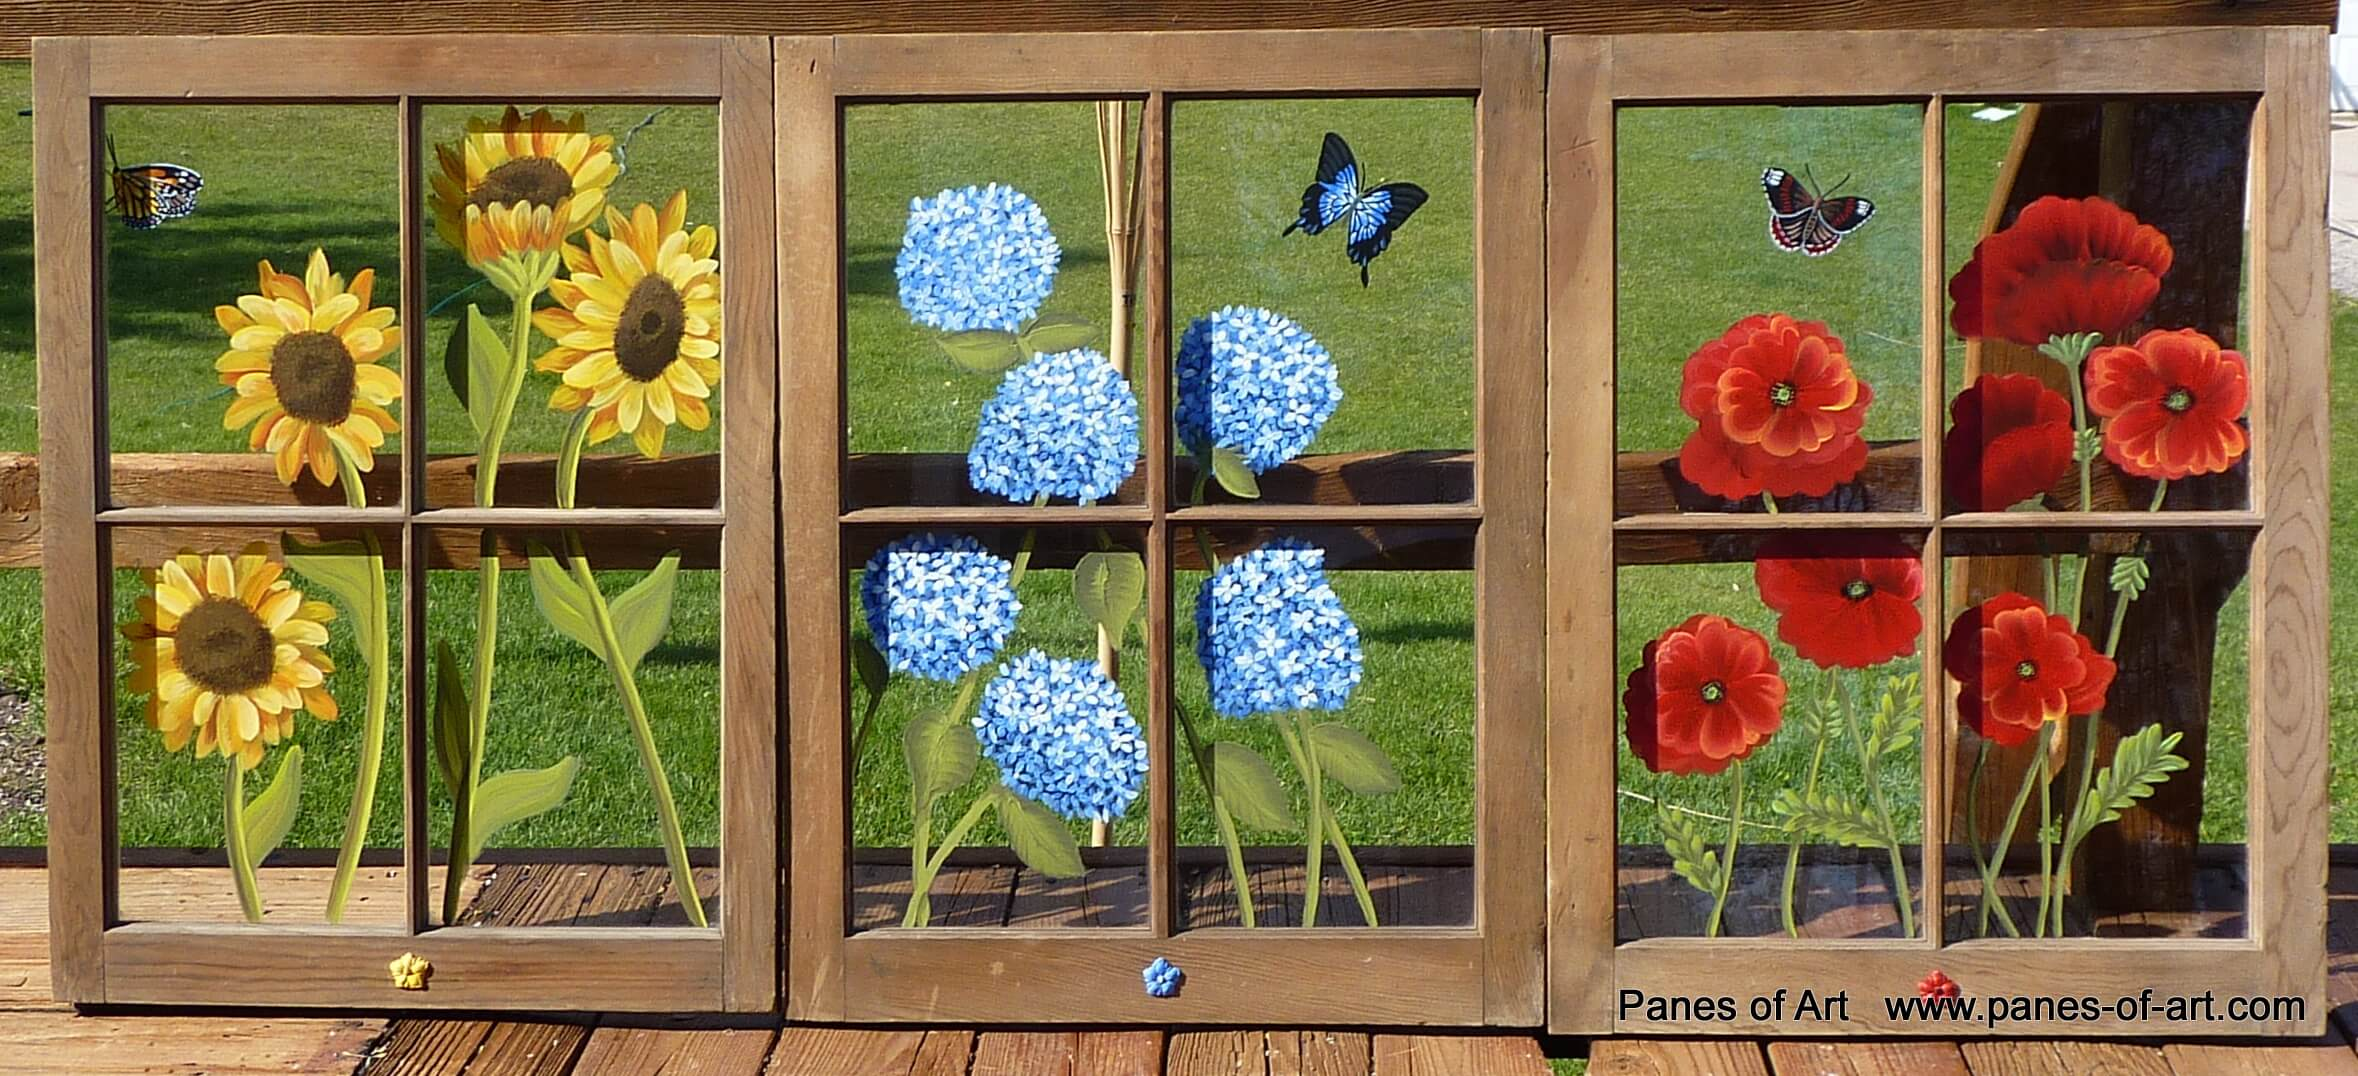 How To Make Painted Window Panes